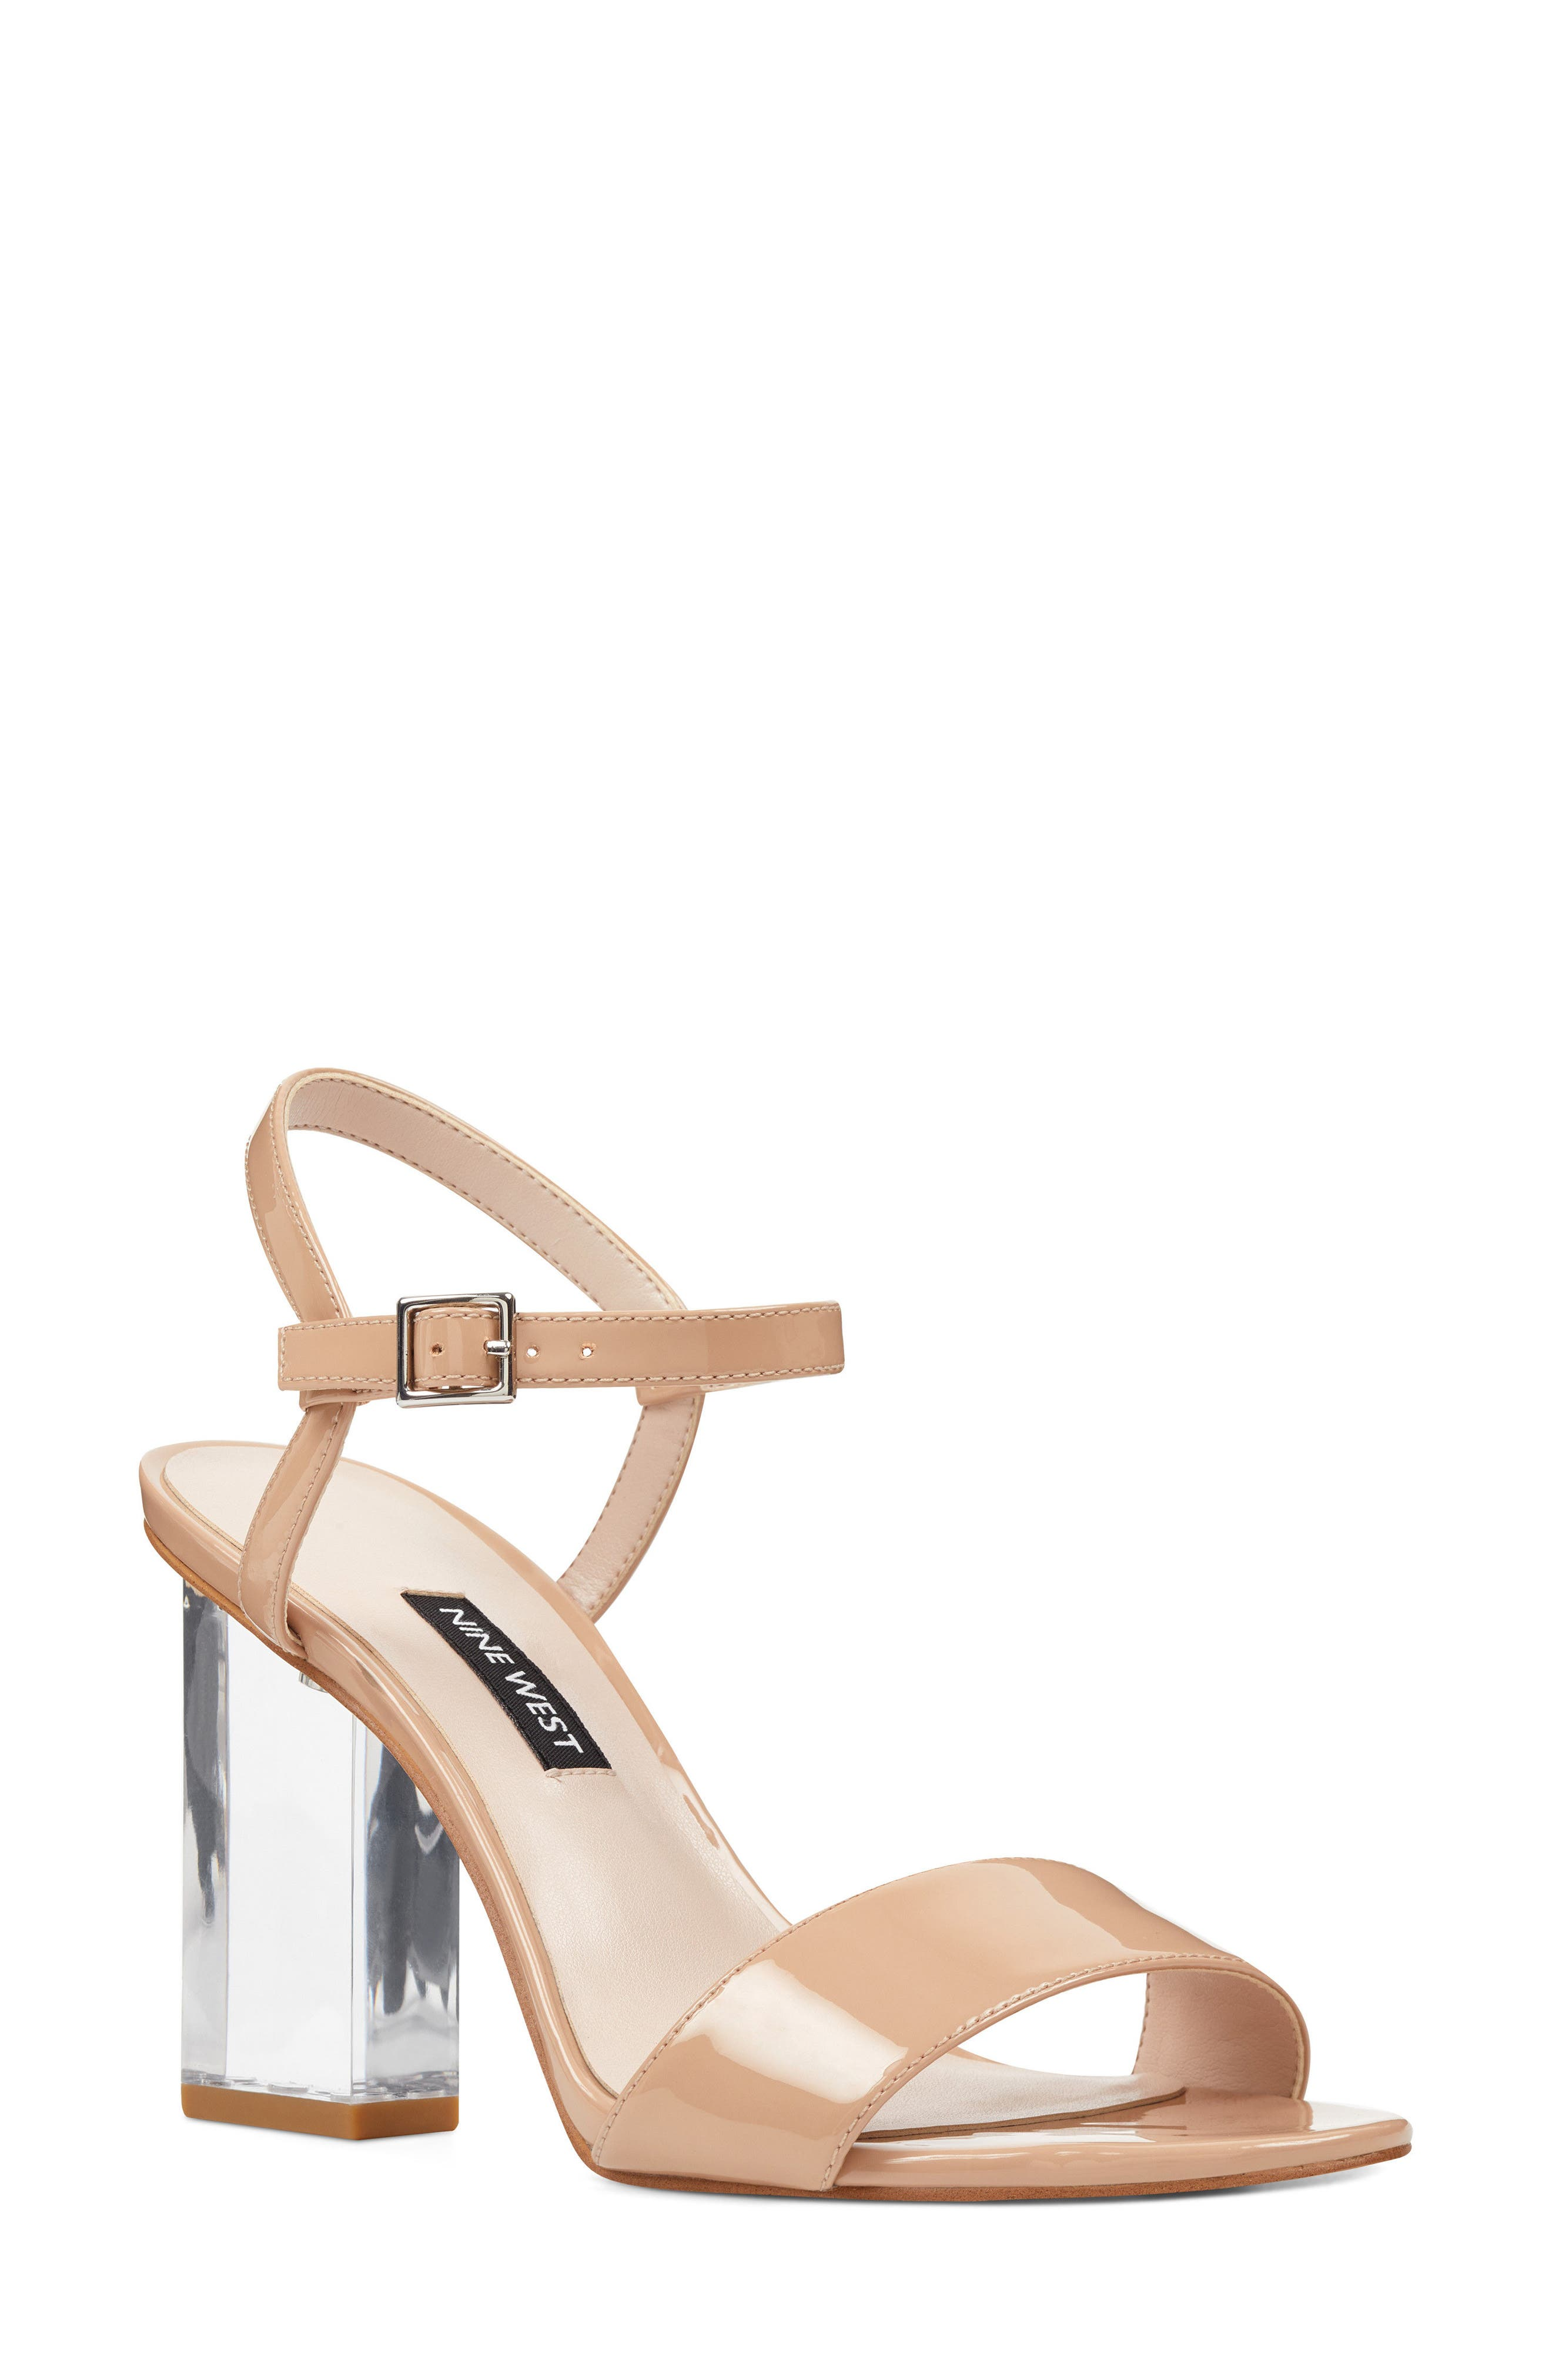 Feisty Ankle Strap Sandal,                             Main thumbnail 1, color,                             Nude Suede